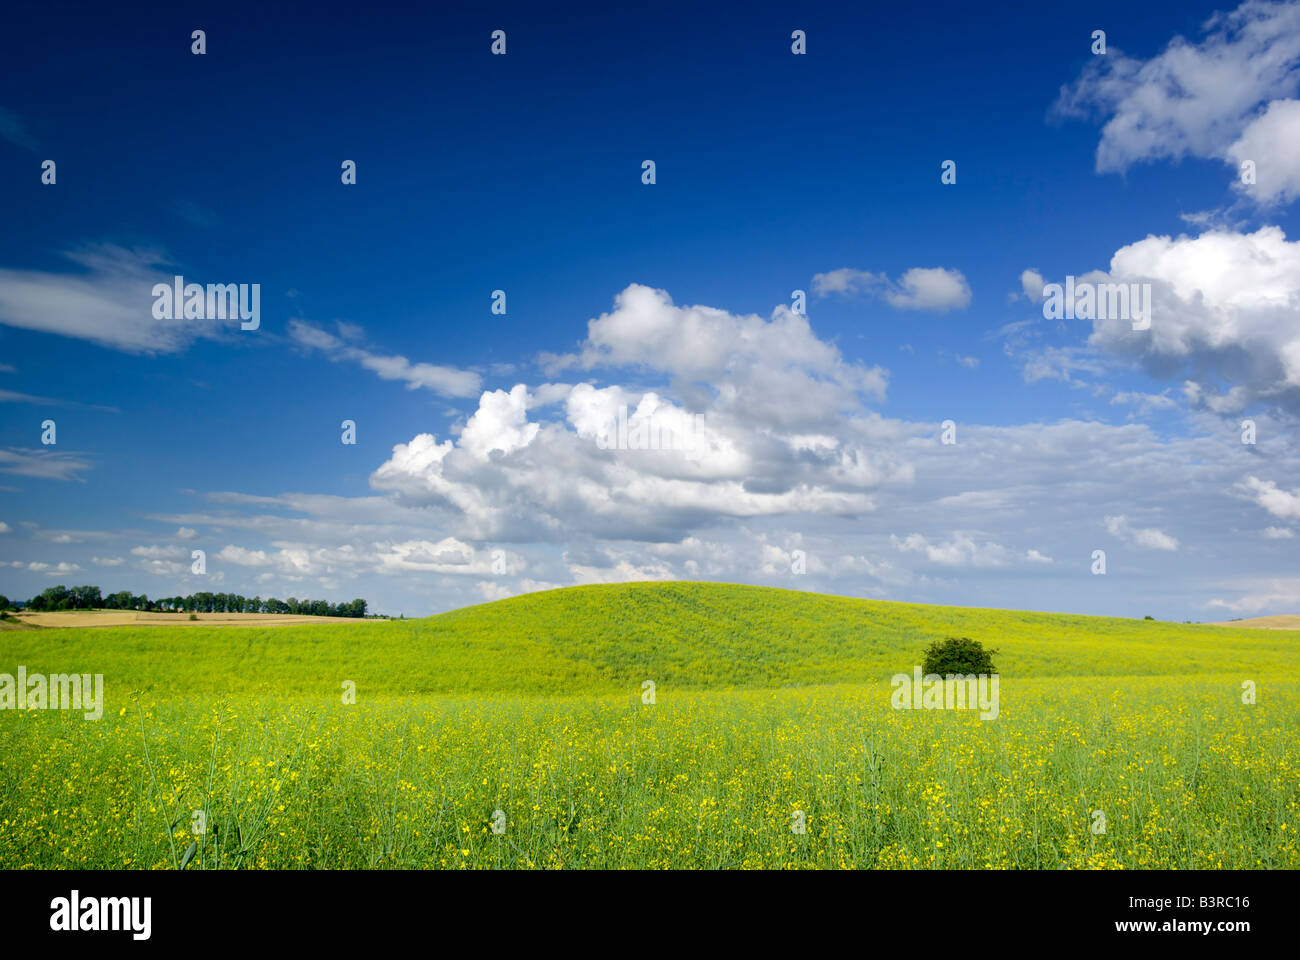 Summer landscape - saturated view of meadow. Europe, Poland. Adobe RGB (1998). - Stock Image